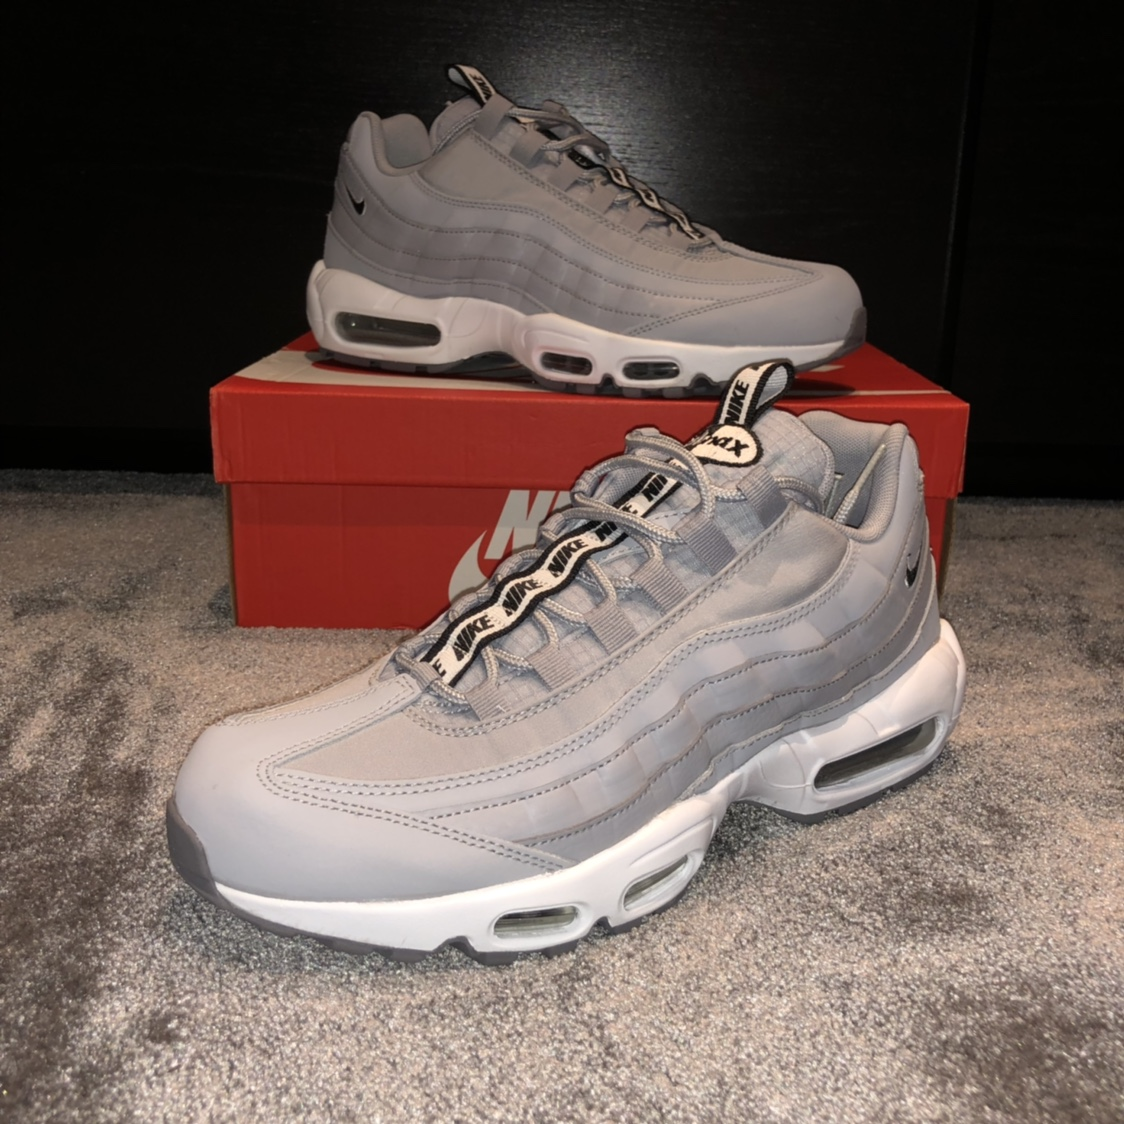 Nike air max 95 taped , Wolf grey & white , Size 9...